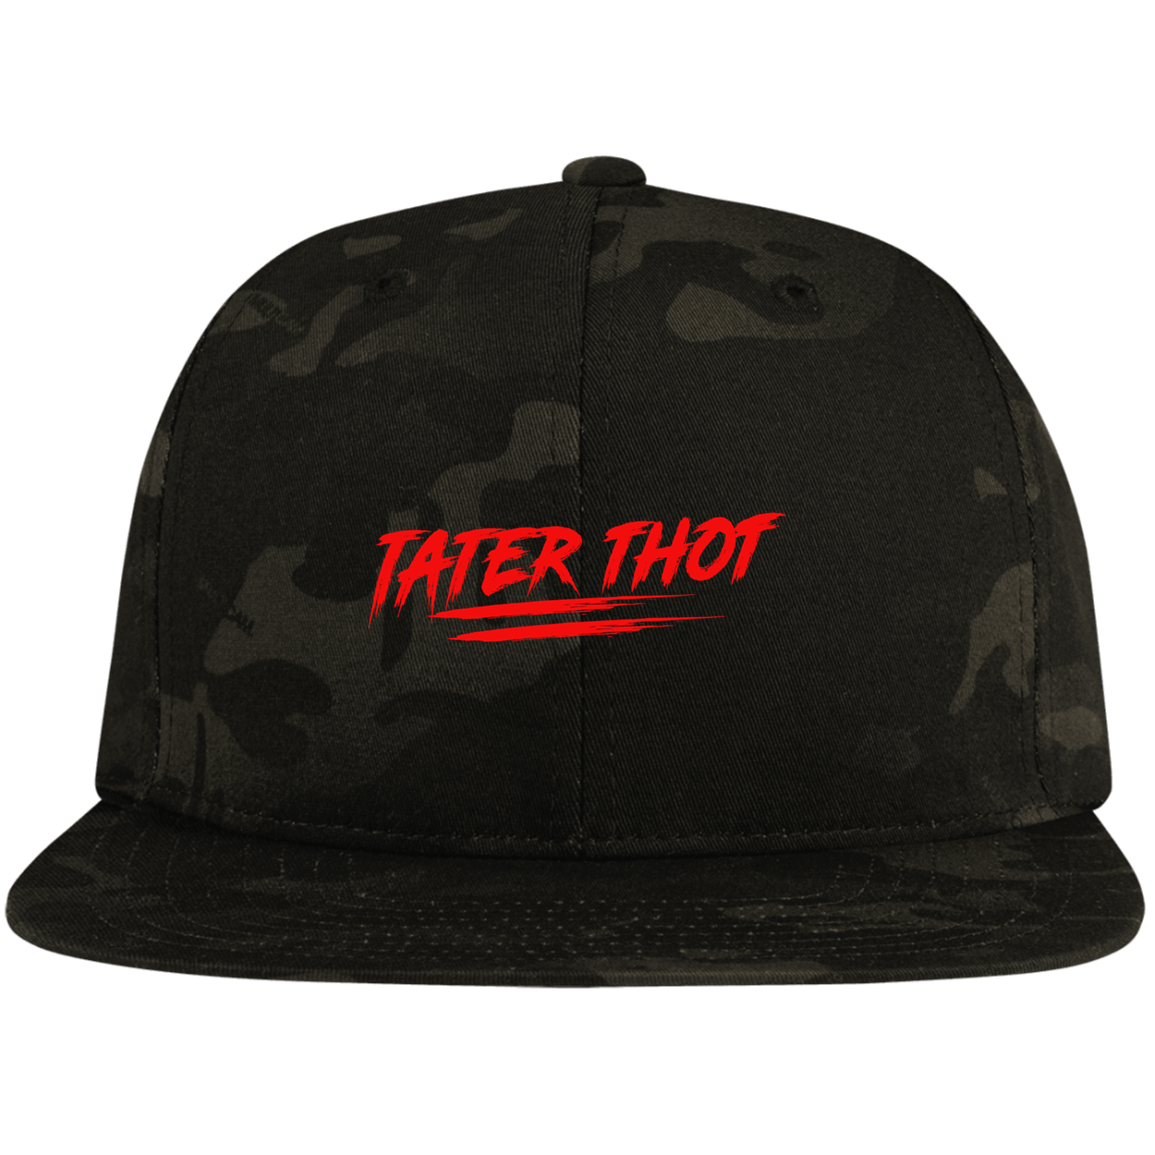 TATER THOT Flat Bill High-Profile Snapback Hat